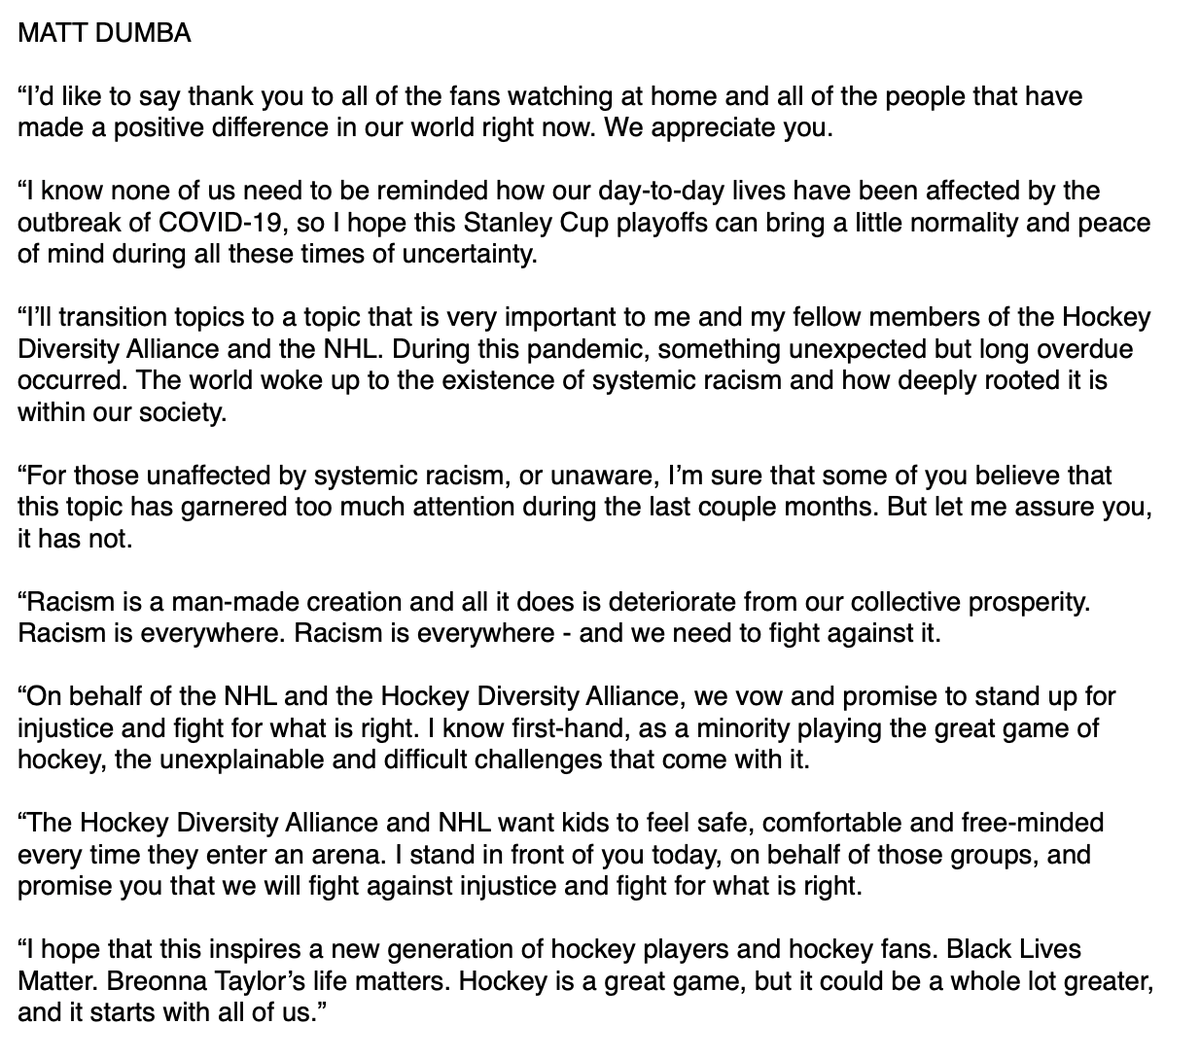 Incredibly powerful words by @matt_dumba, representing @theHDA2020. Here is exactly what he said, before kneeling for the Star Spangled Banner.